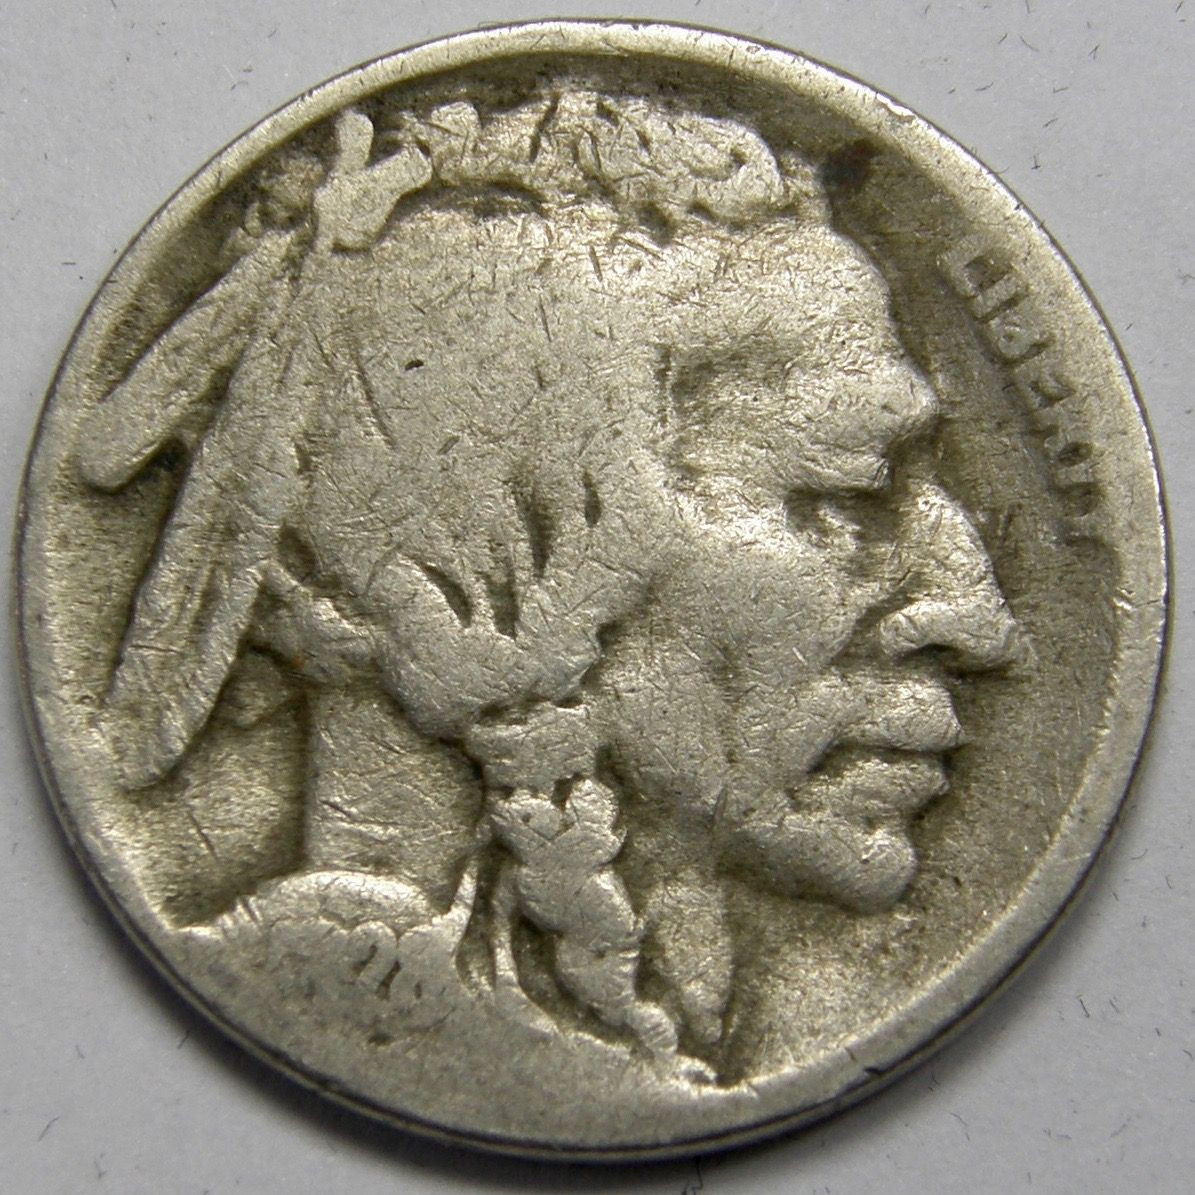 1928 S Buffalo Nickel 2 for sale now online Item